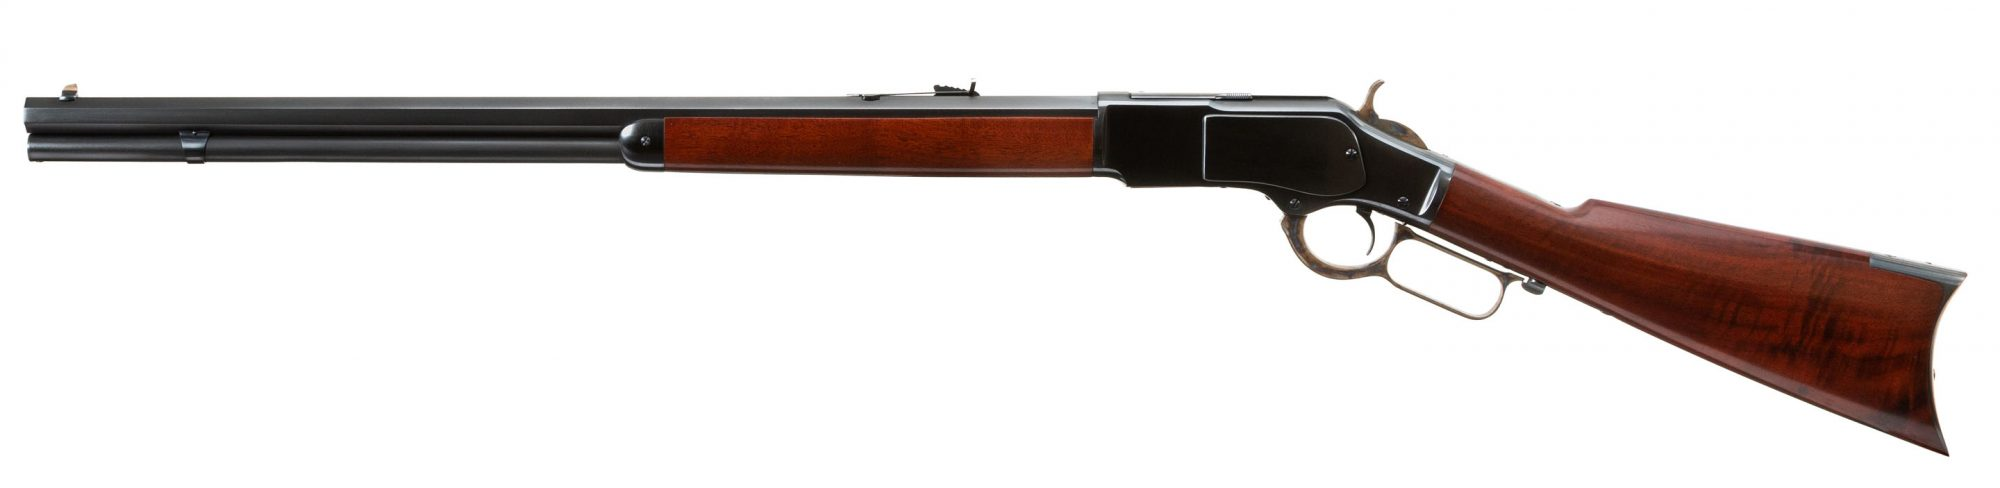 Photo of a Winchester Model 1873 from 1882, restored in 2018 and for sale by Turnbull Restoration